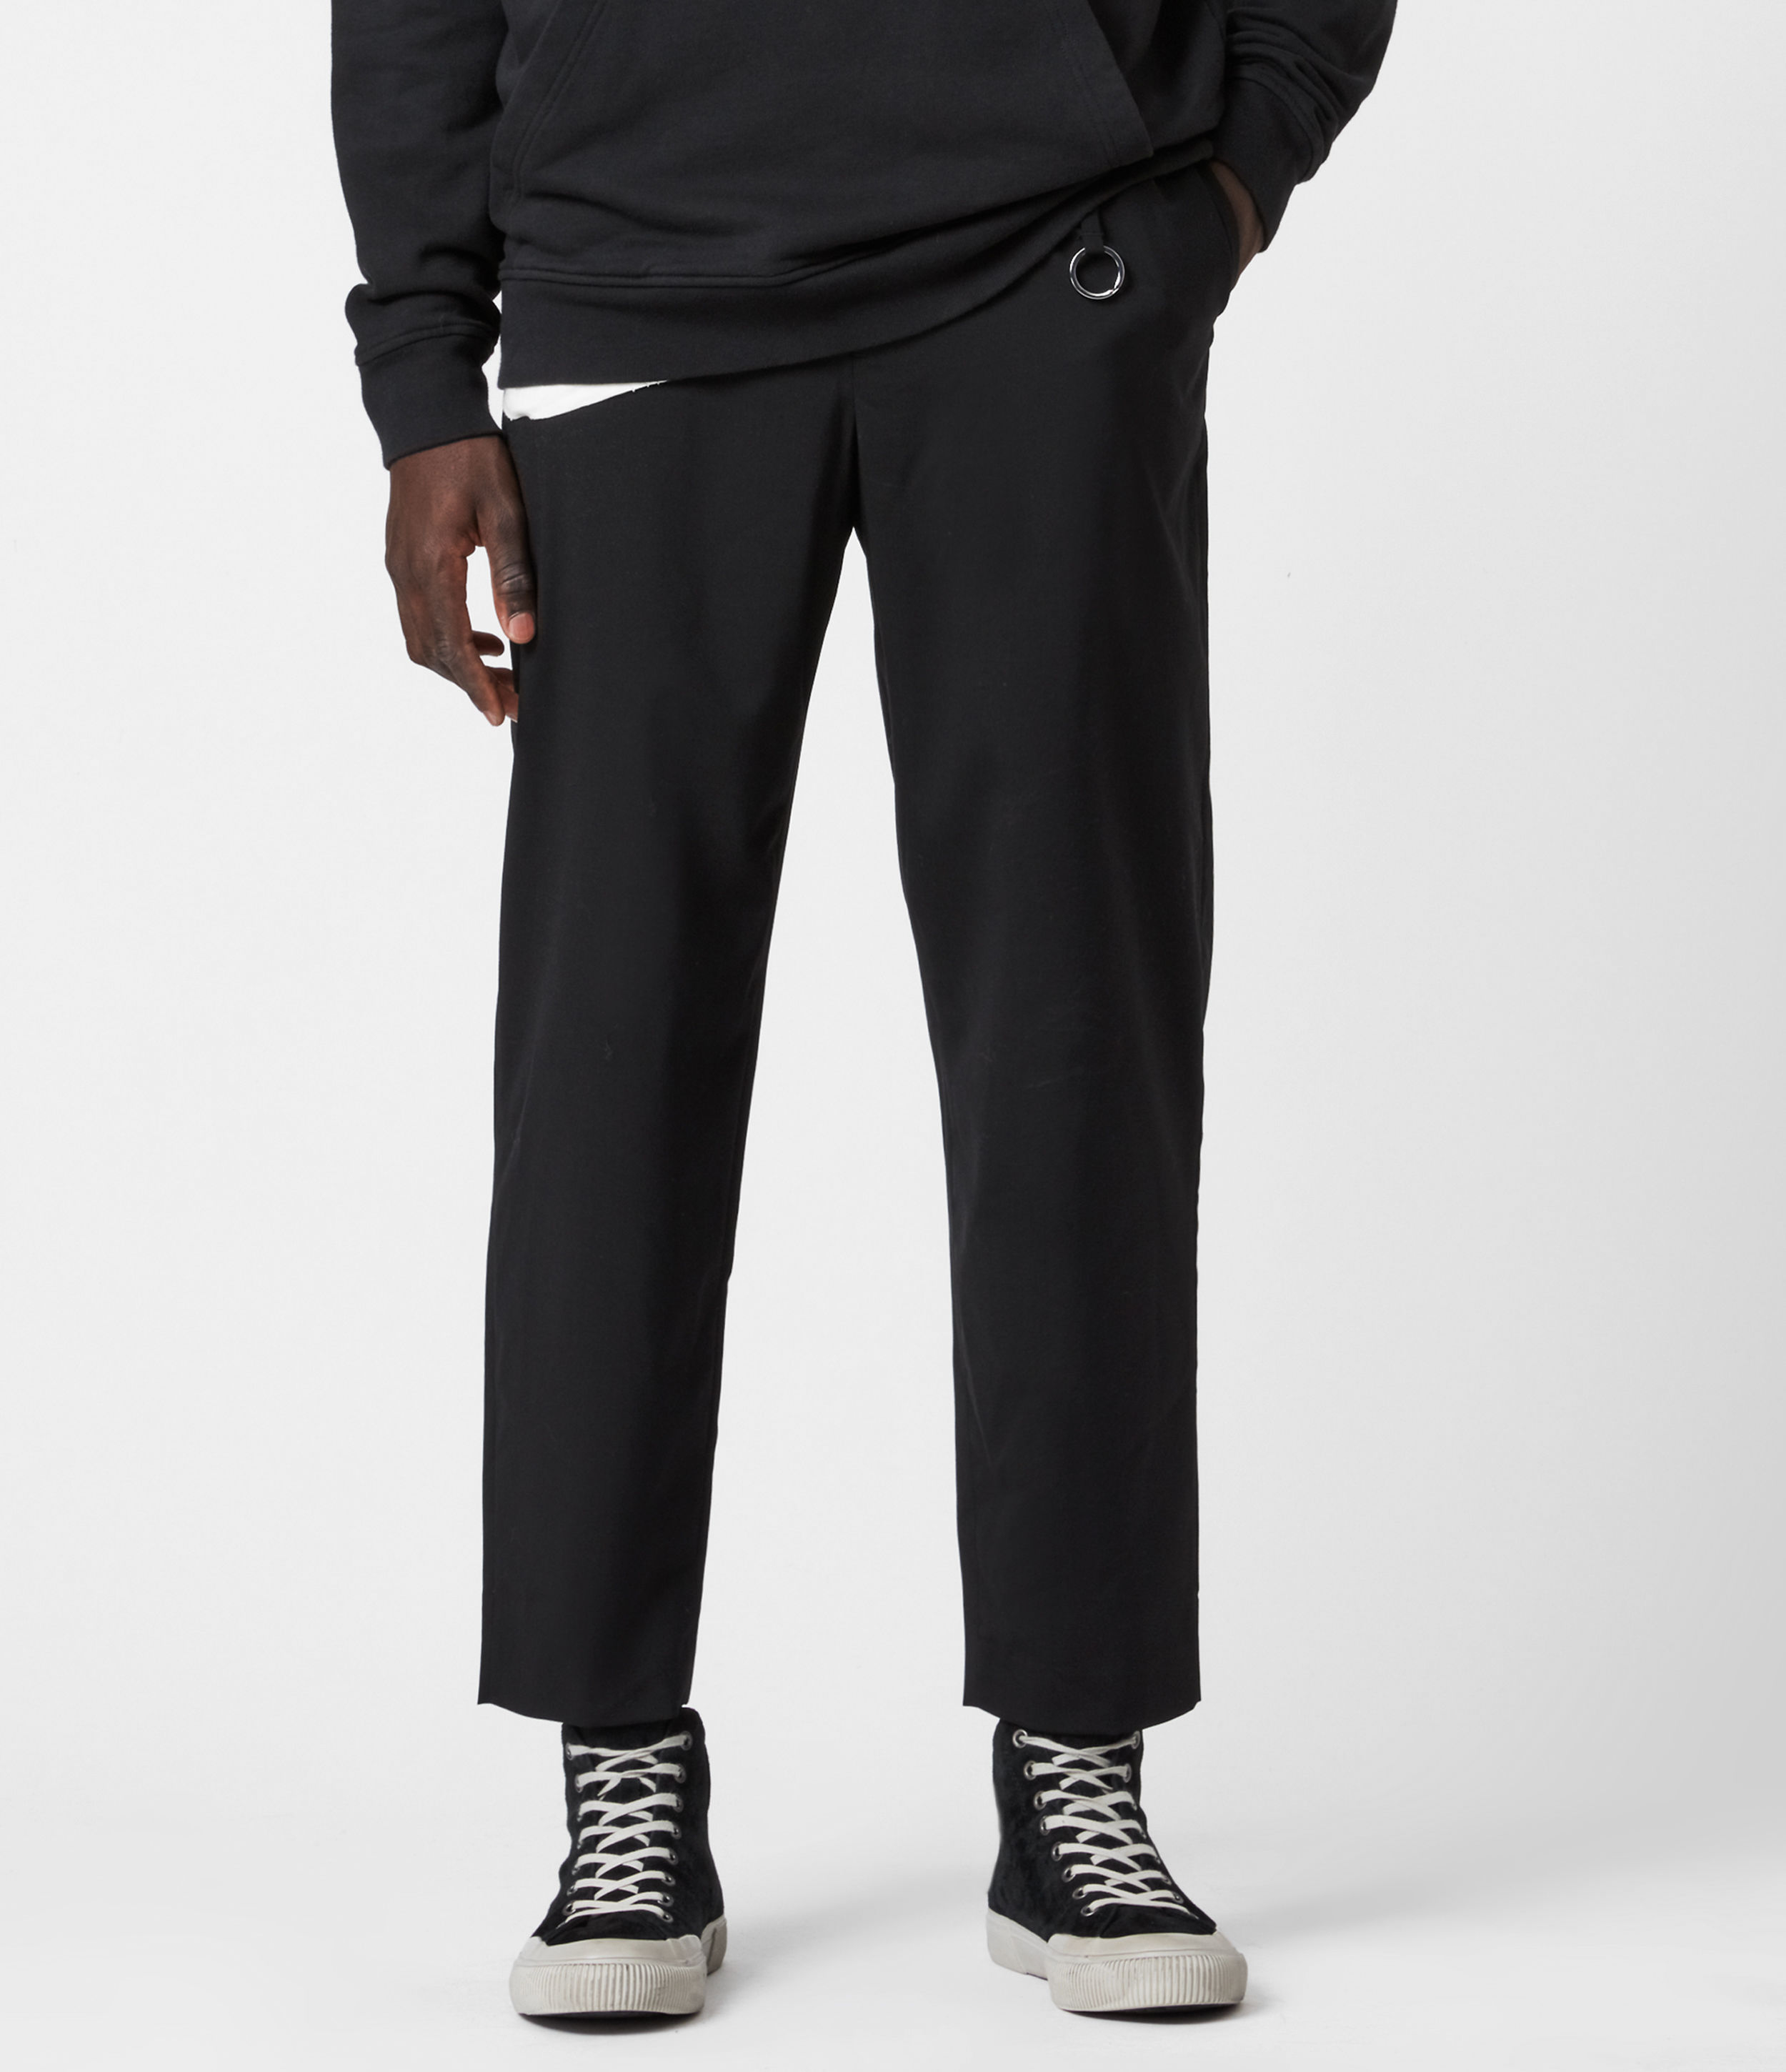 AllSaints Mens Langley Straight Cropped Trousers, Black, Size: 28